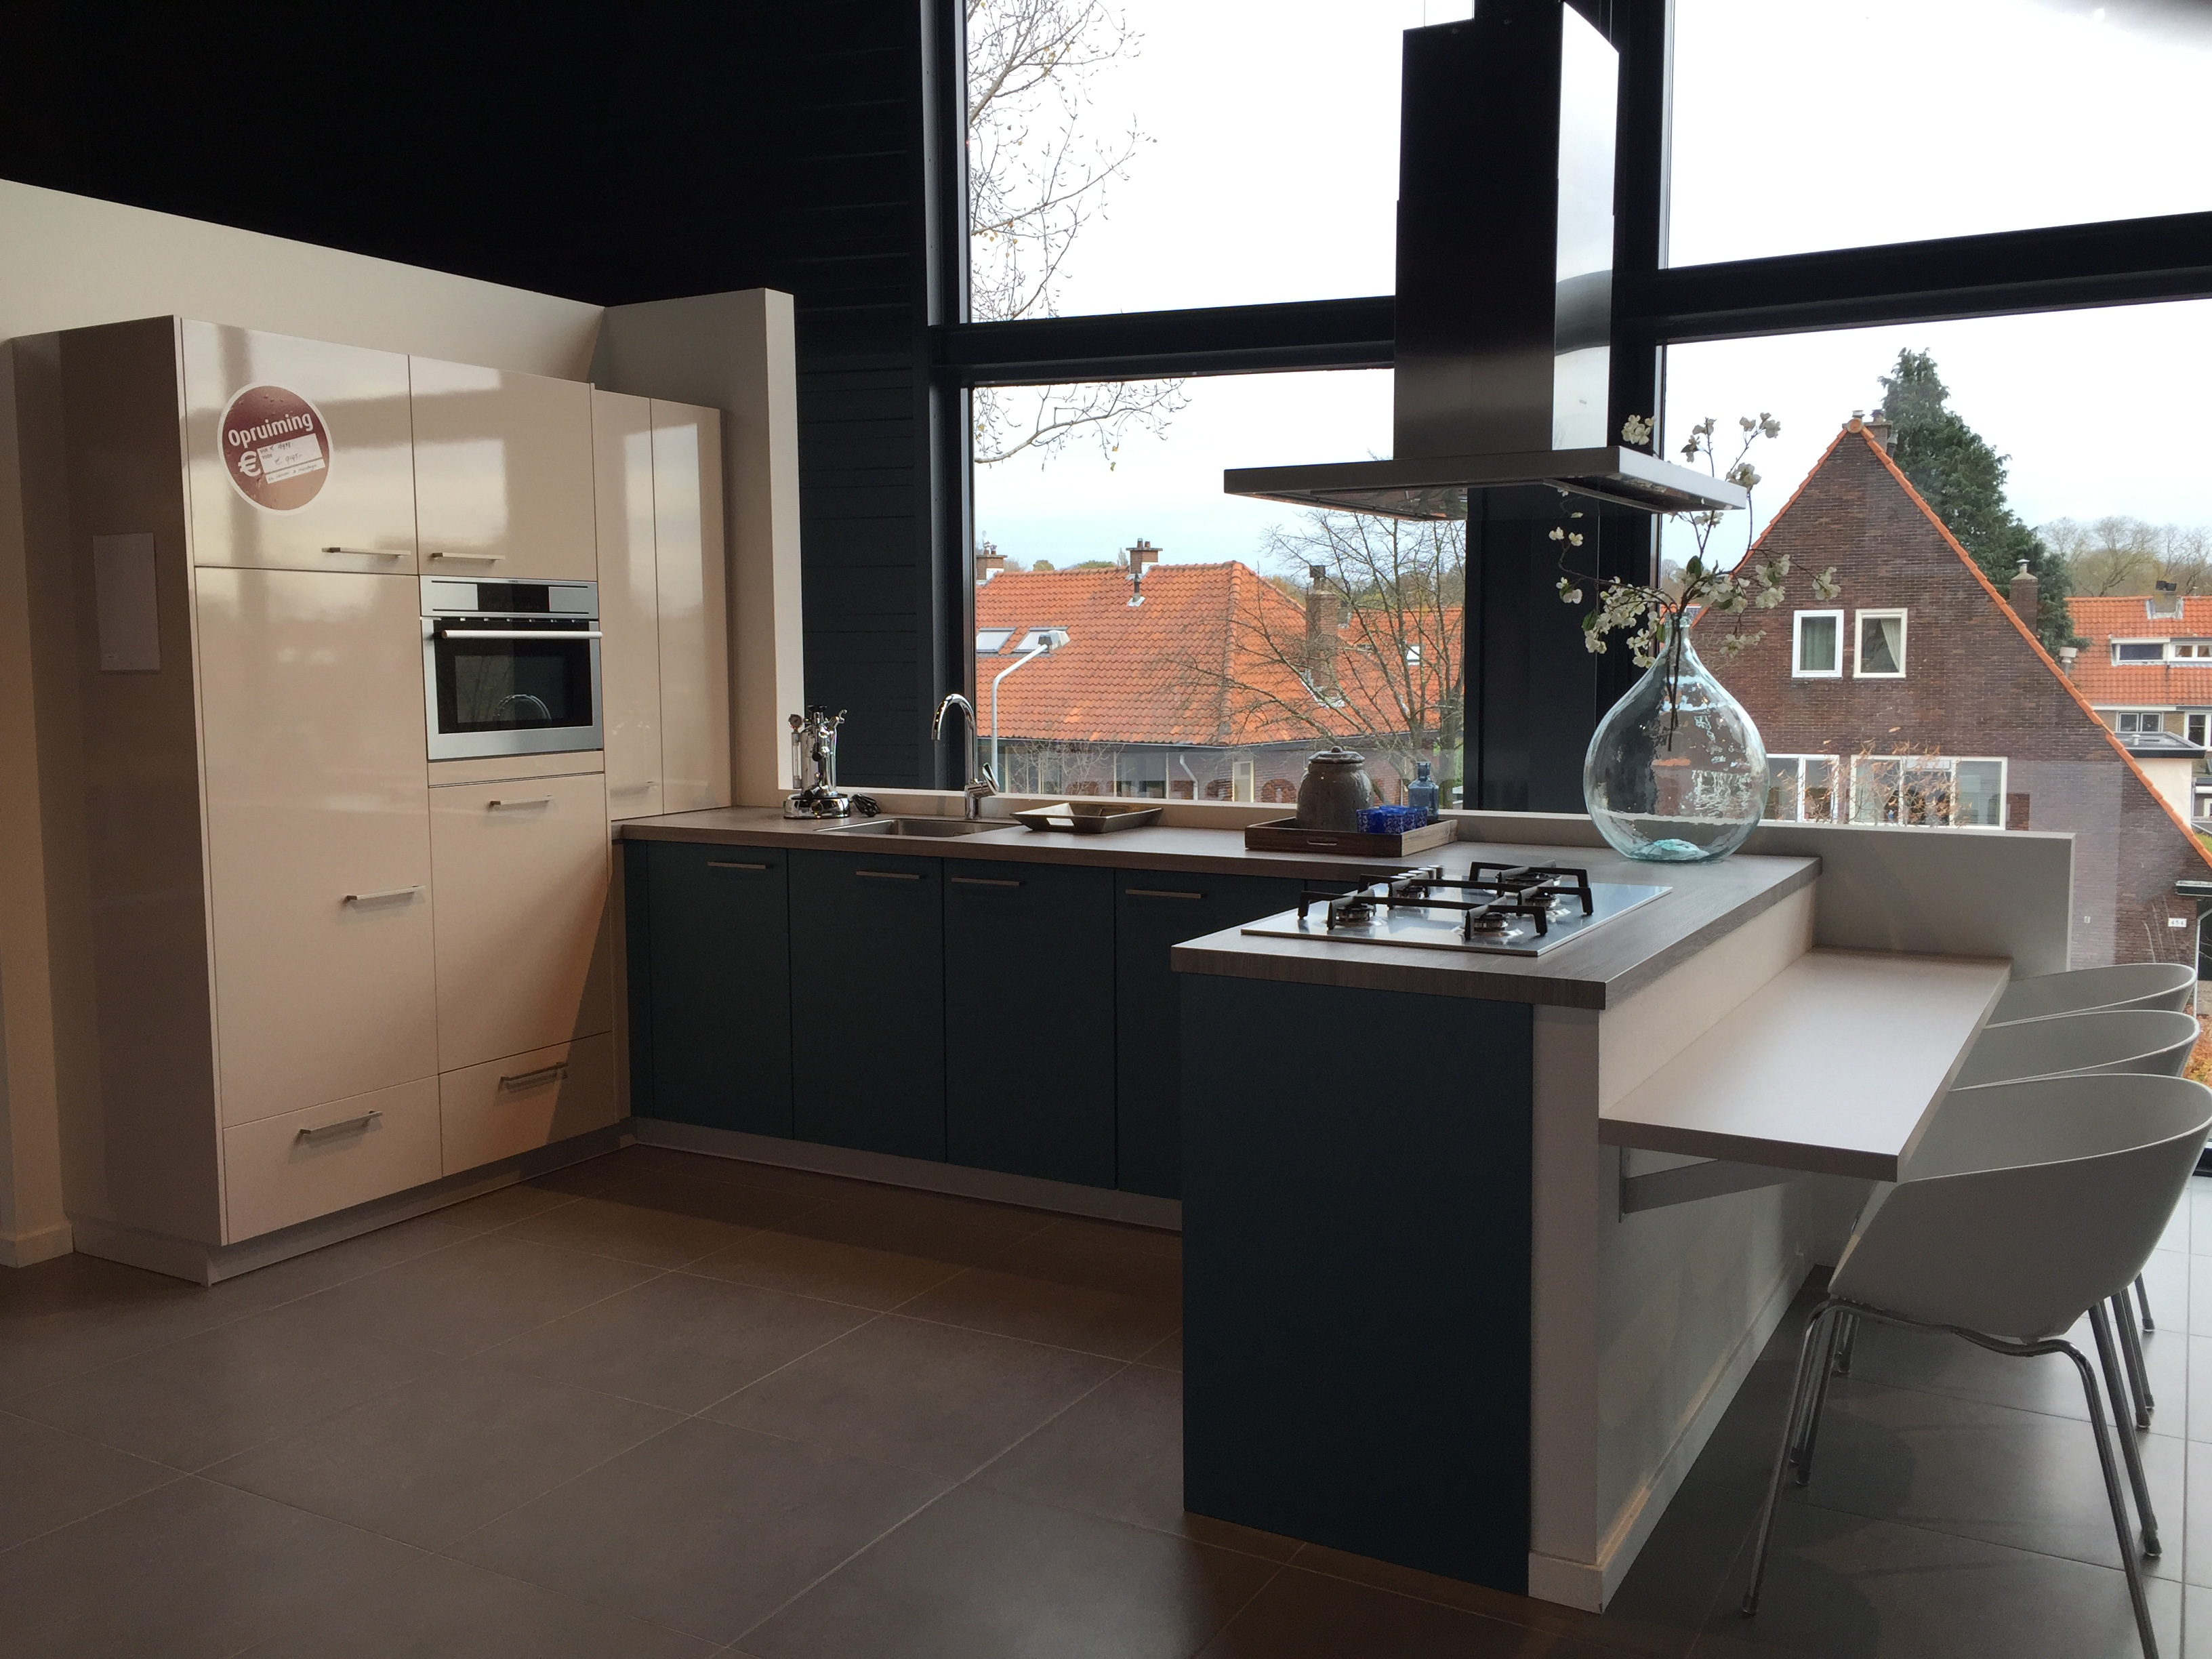 Design Keukens Noord Holland : land nederland provincie noord holland ...